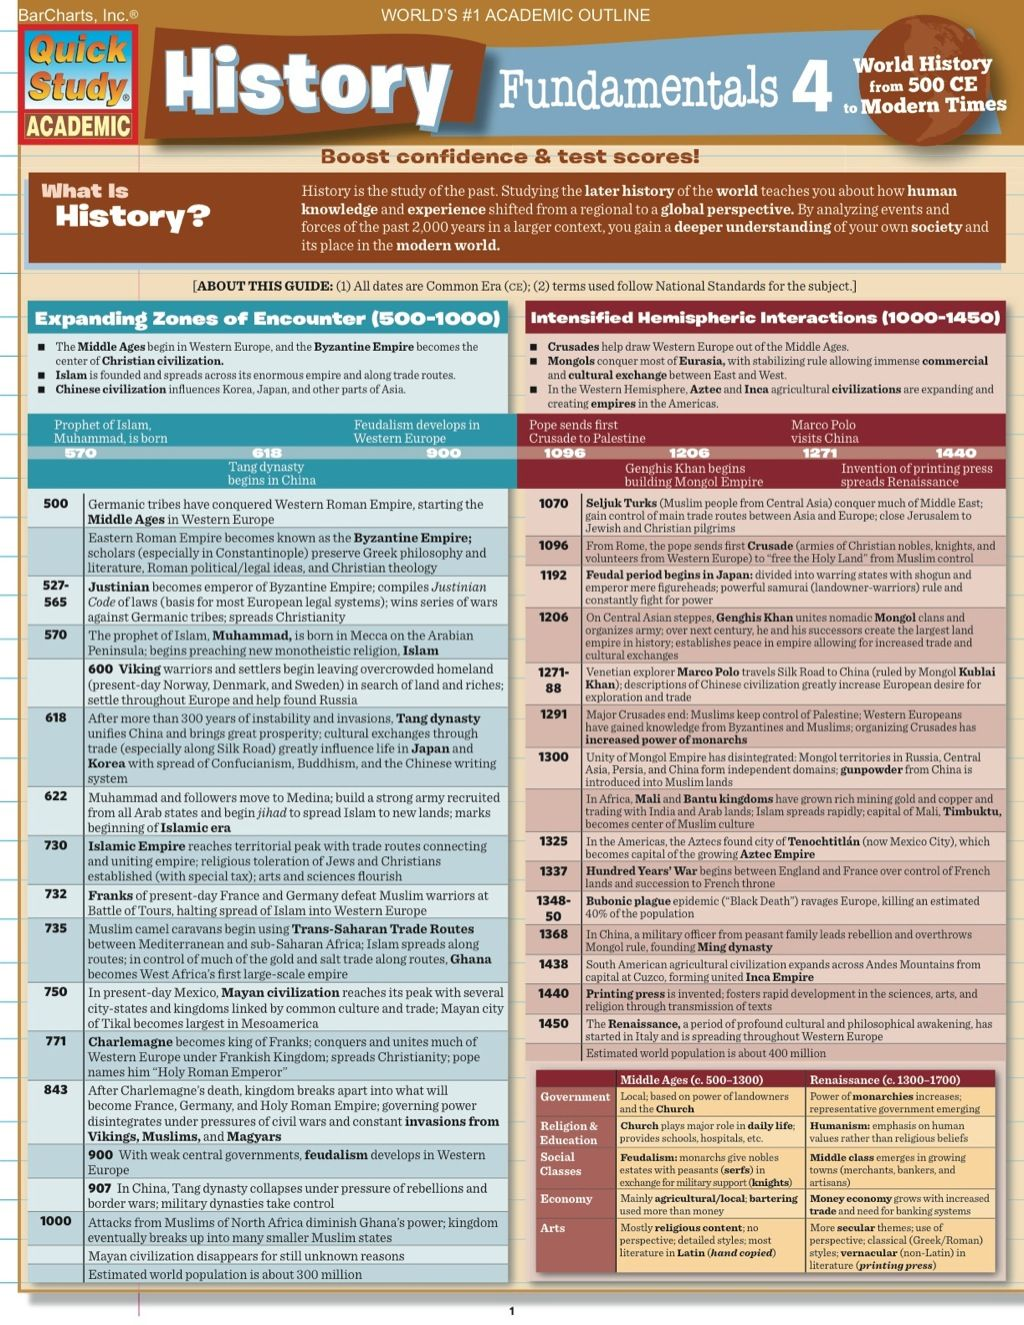 HISTORY FUNDAMENTALS 4 STUDY GUIDE (eBook Rental) | Products